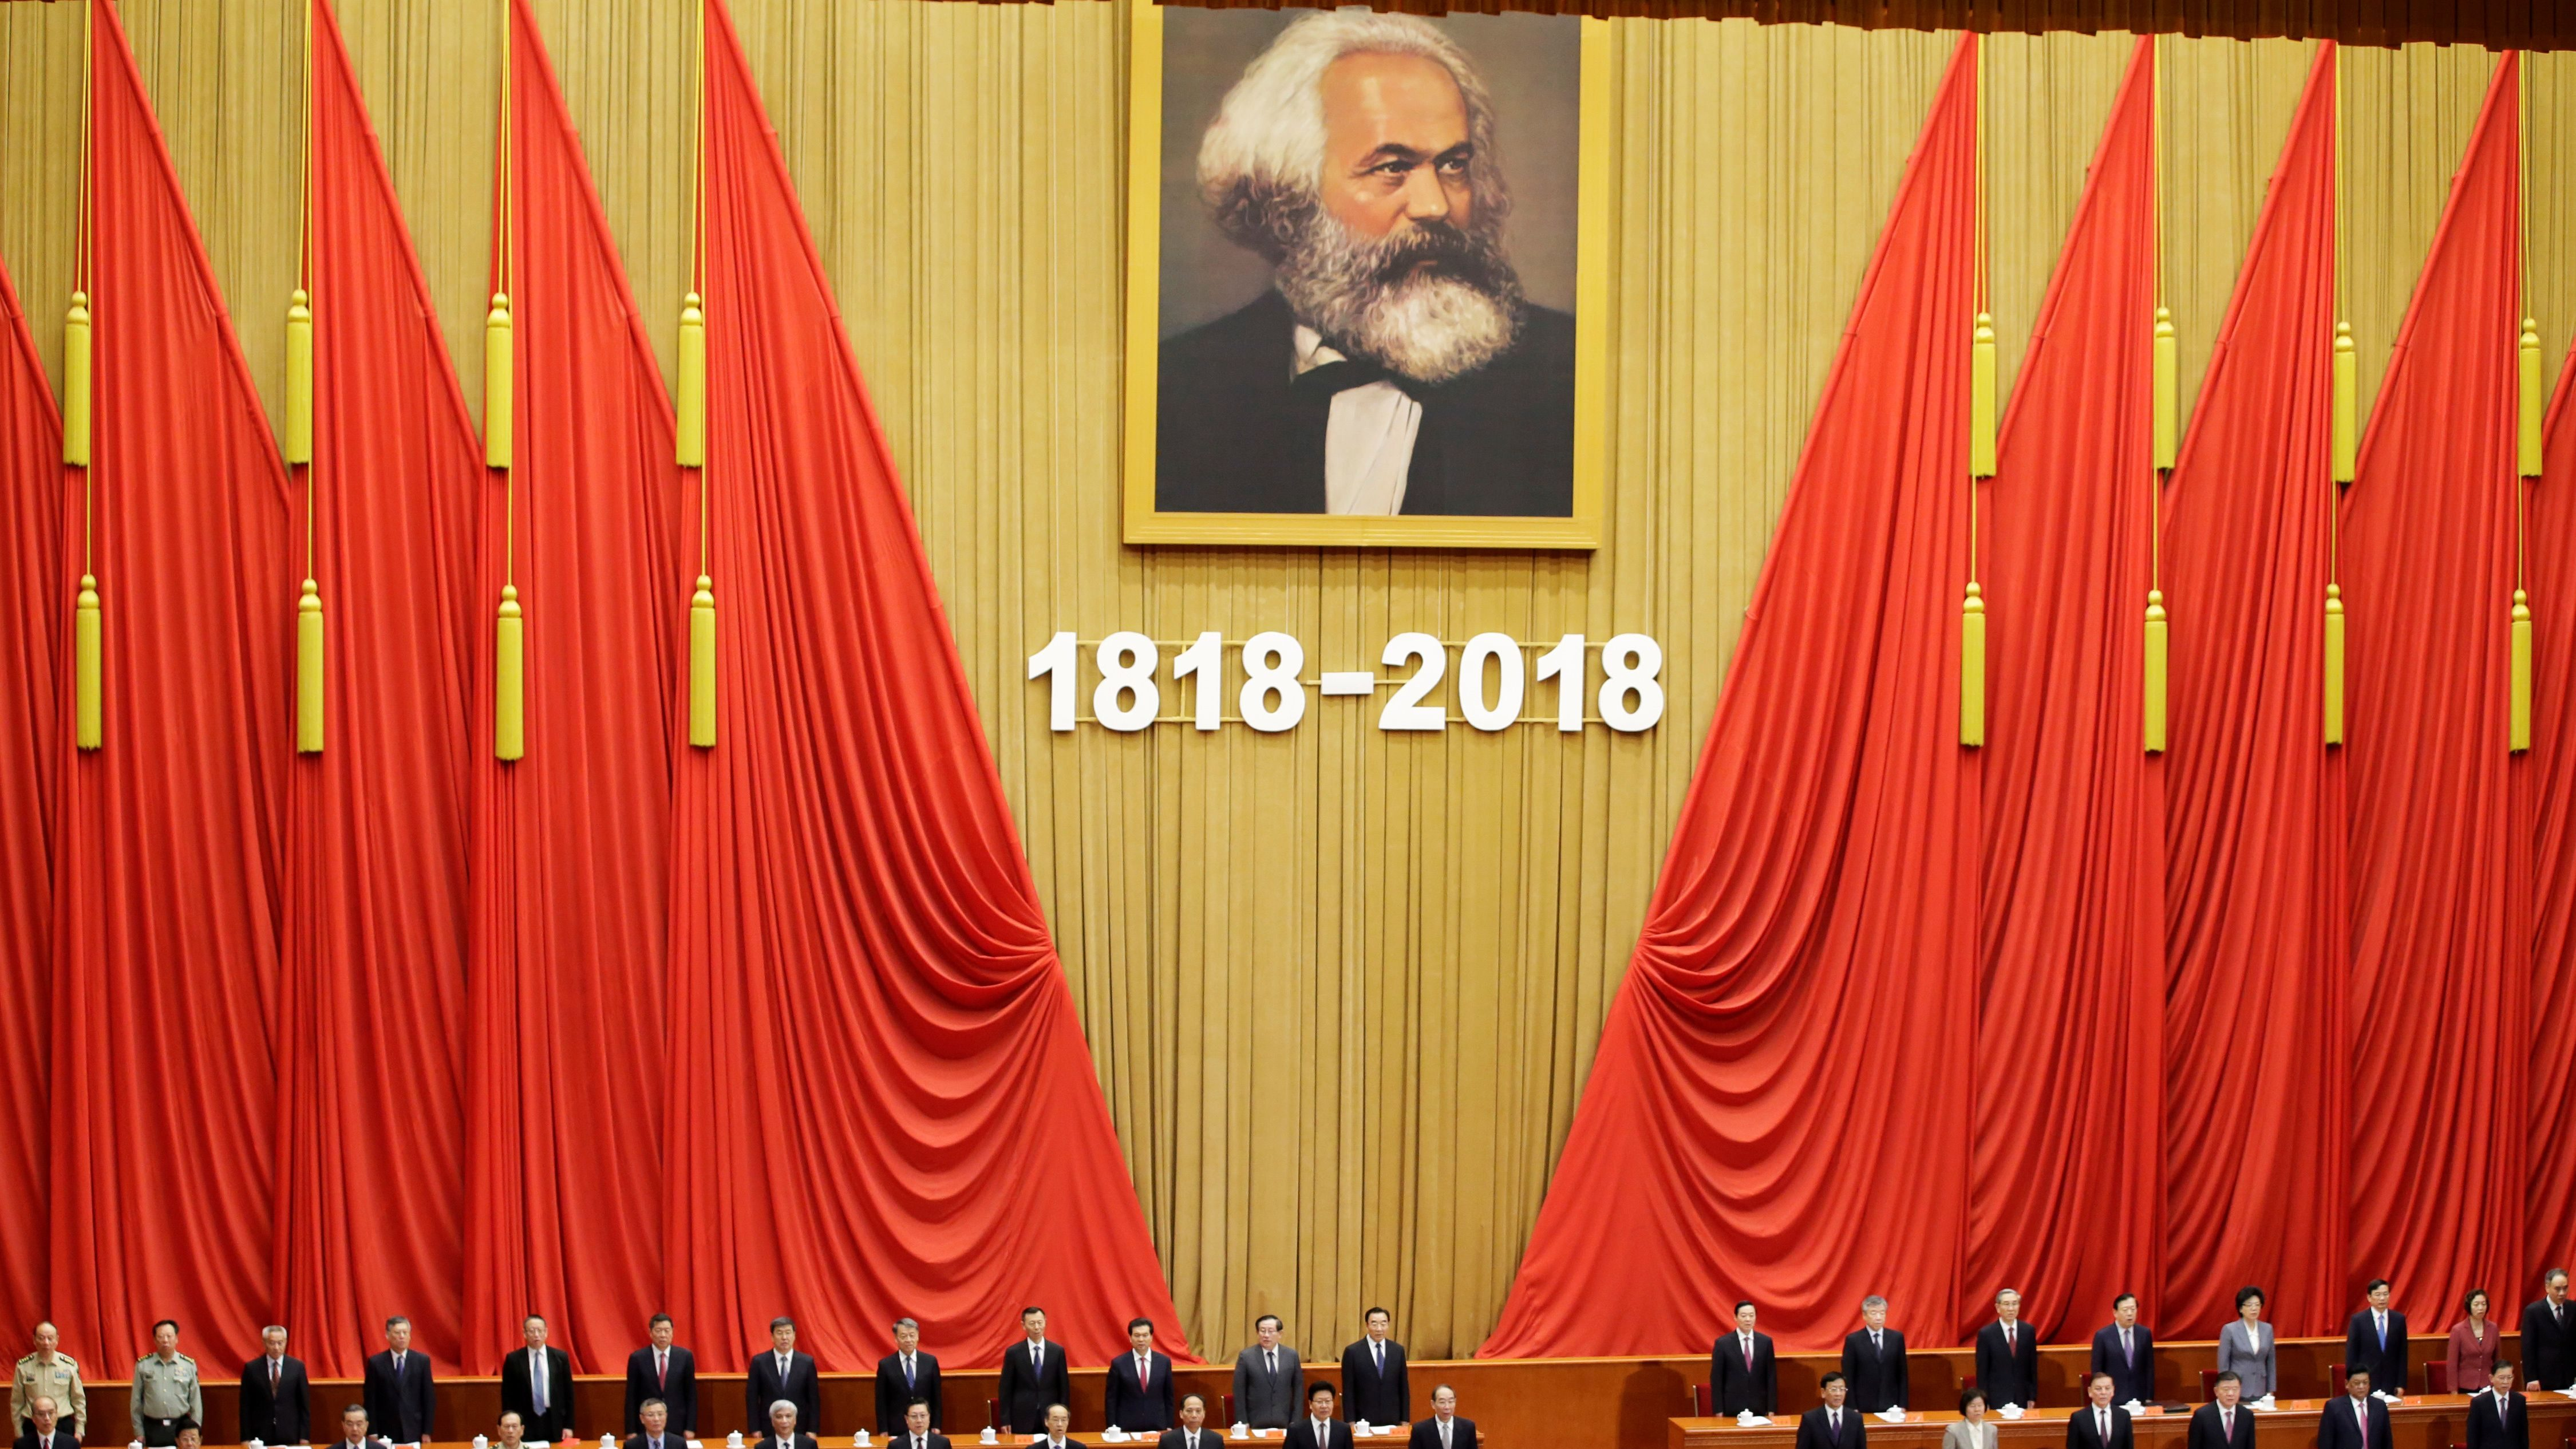 Chinese President Xi Jinping and other officials sing the national anthem at an event commemorating the 200th birth anniversary of Karl Marx, in Beijing, China May 4, 2018.